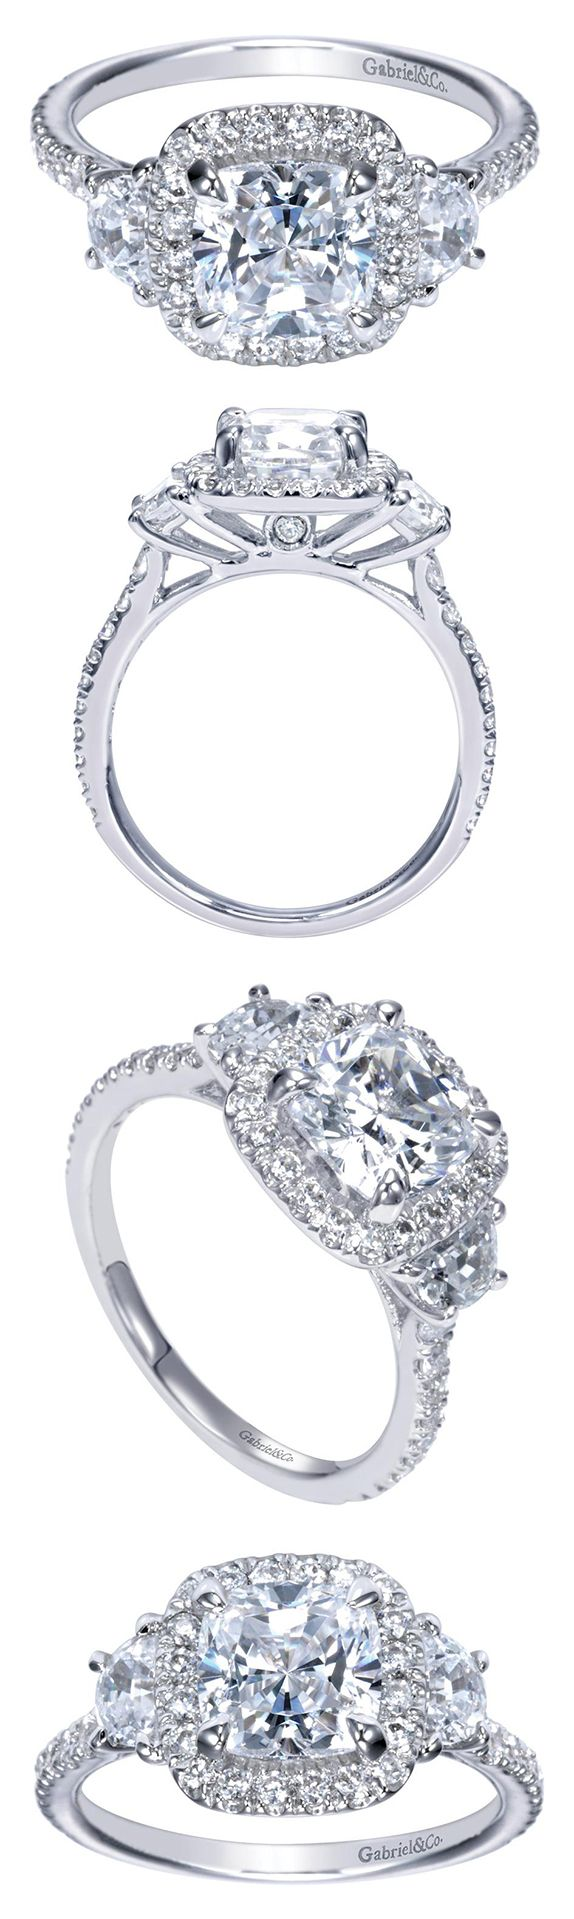 A stunning 14k white gold contemporary halo engagement ring.